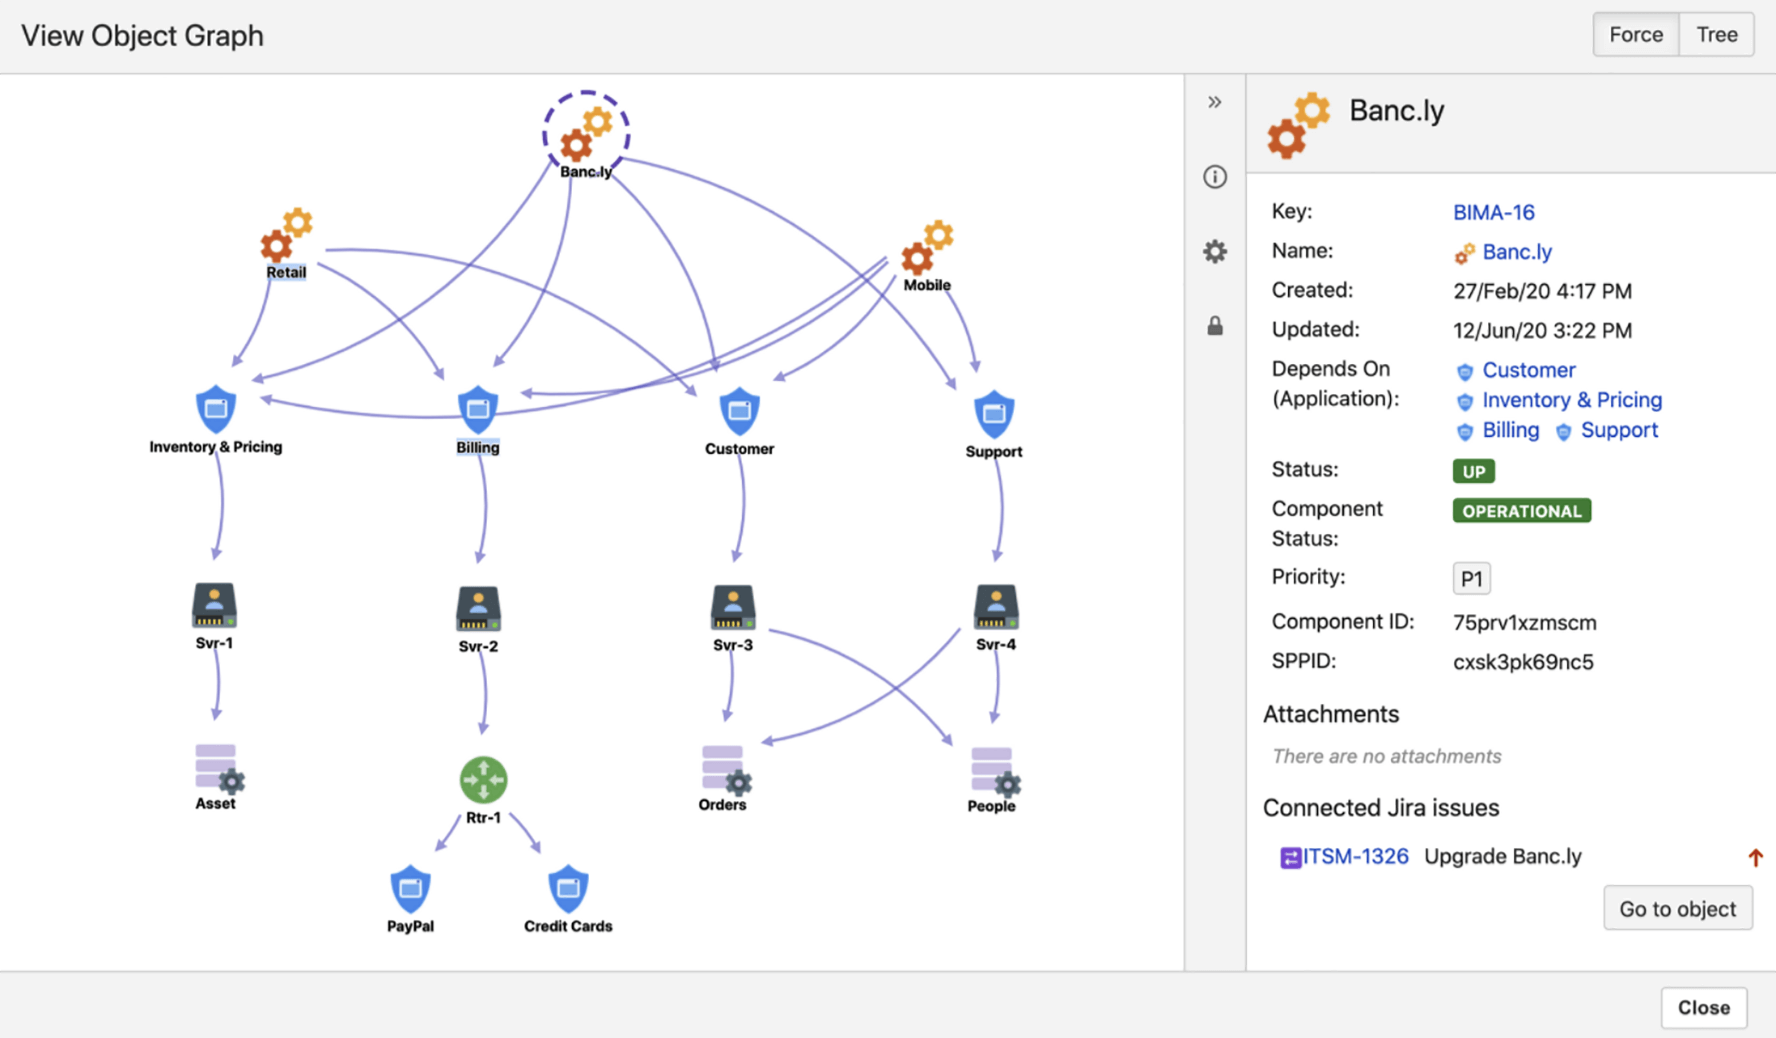 Insight graphical viewer window for the object 'Jira Service Management' showing the dependencies of a service including software, hosts, and other services.